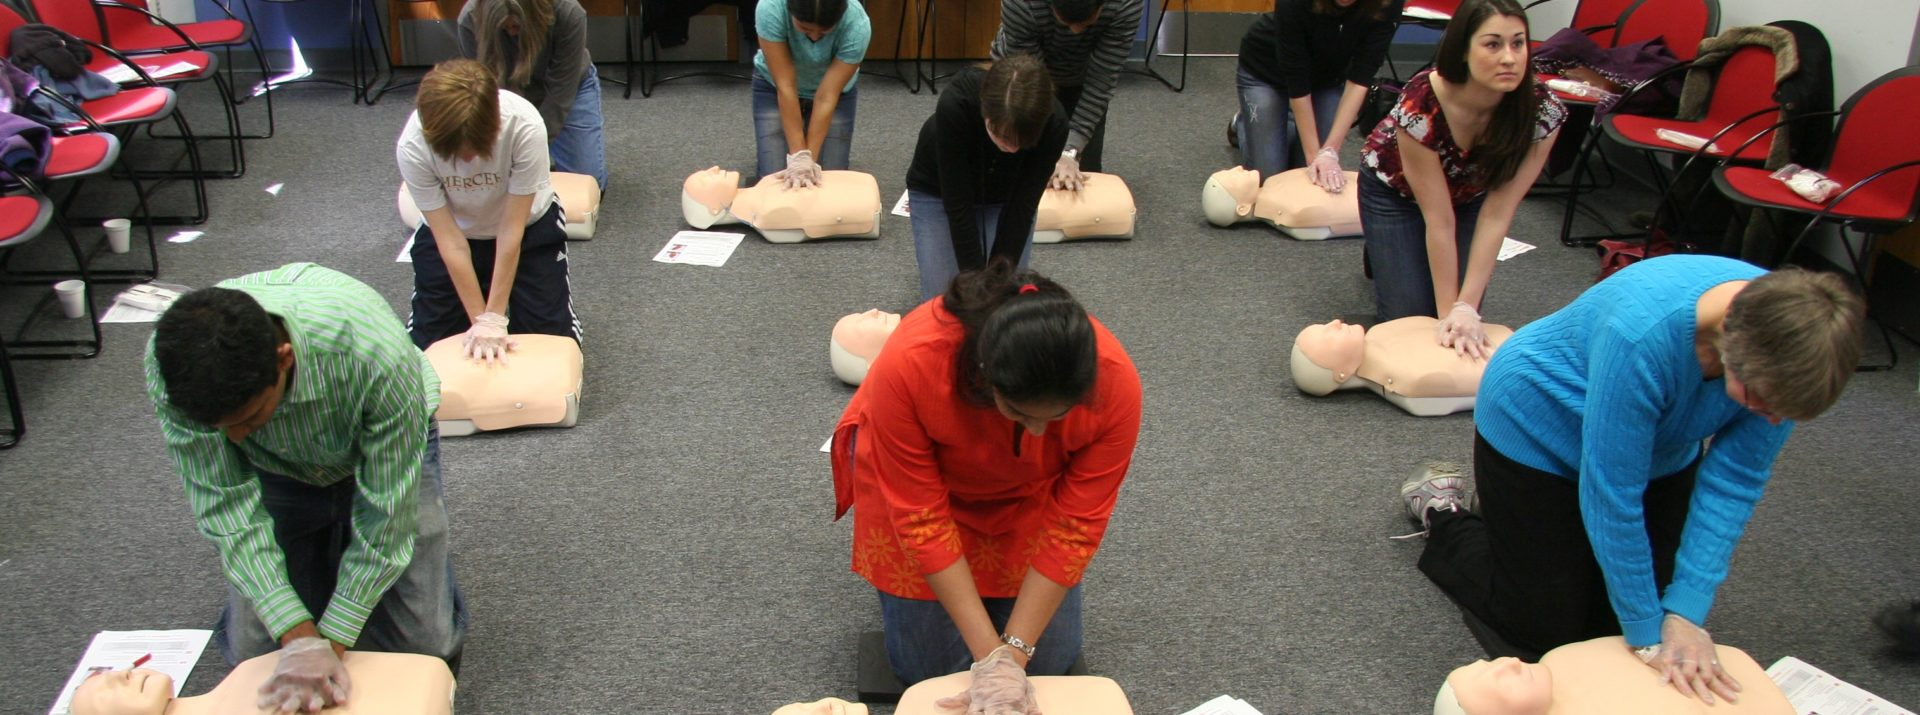 We are a unique CPR Training facility